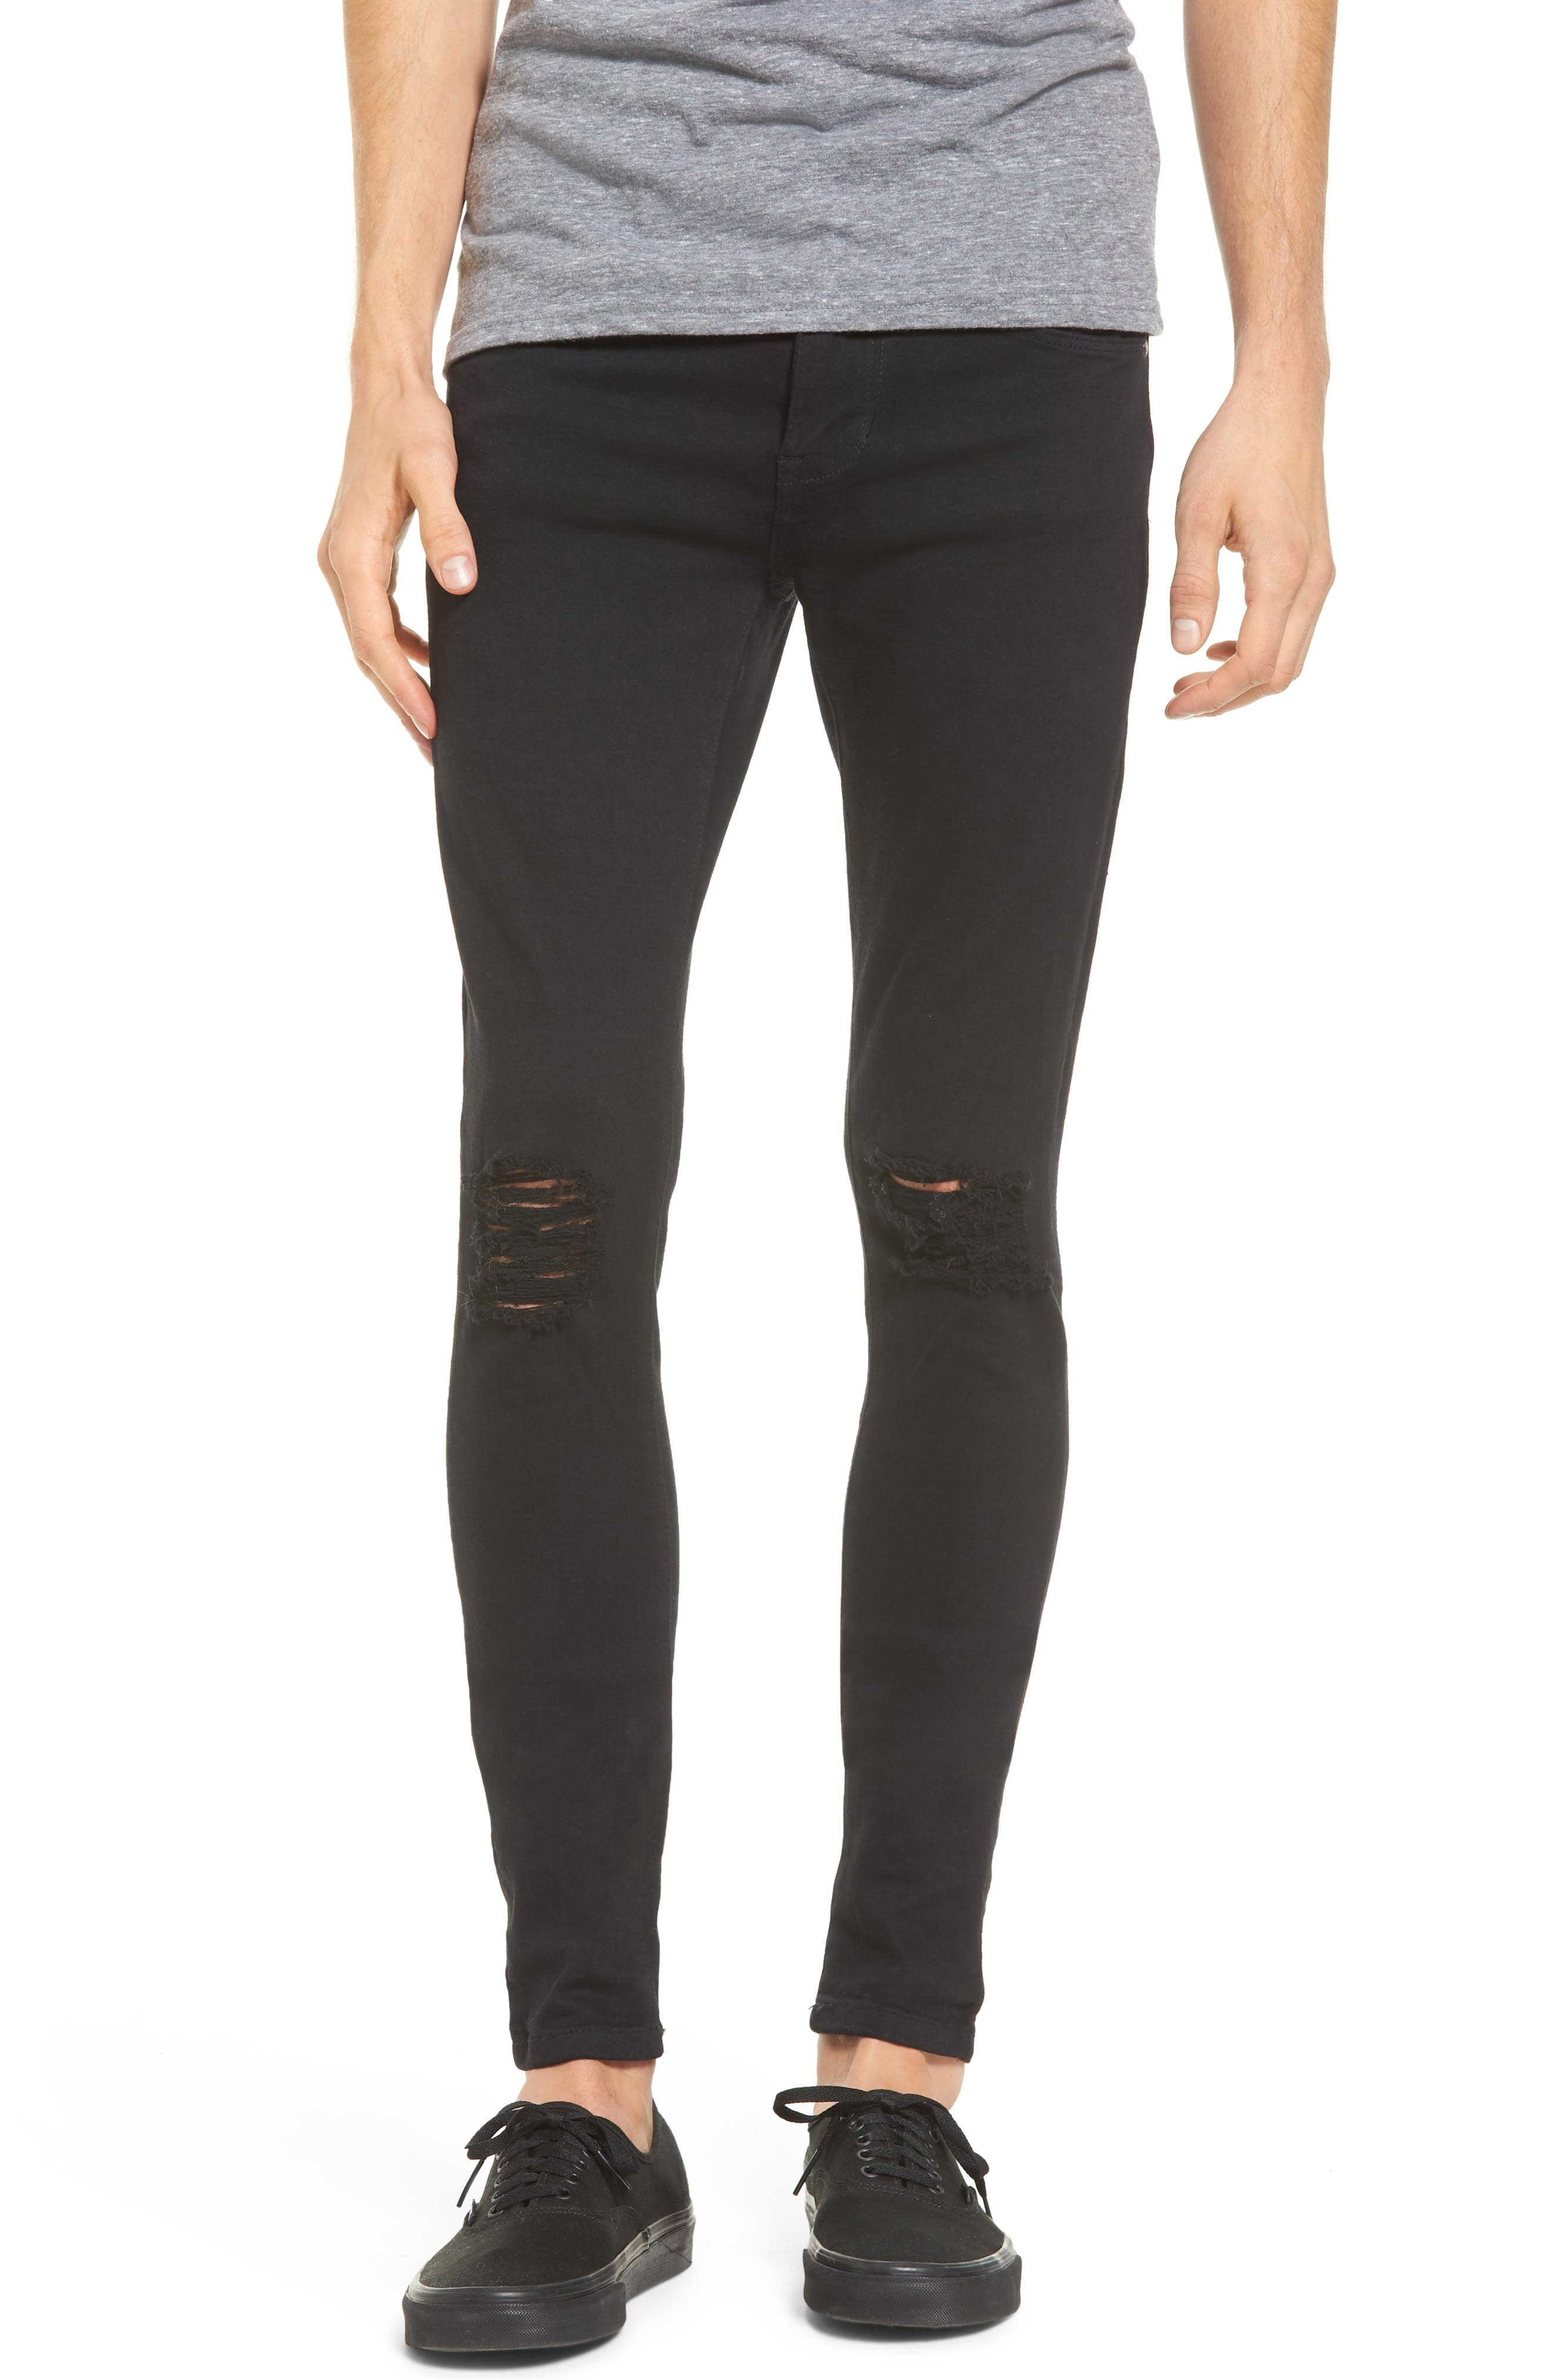 Leroy Slim Fit Jeans,                         Main,                         color, Black Ripped Knees